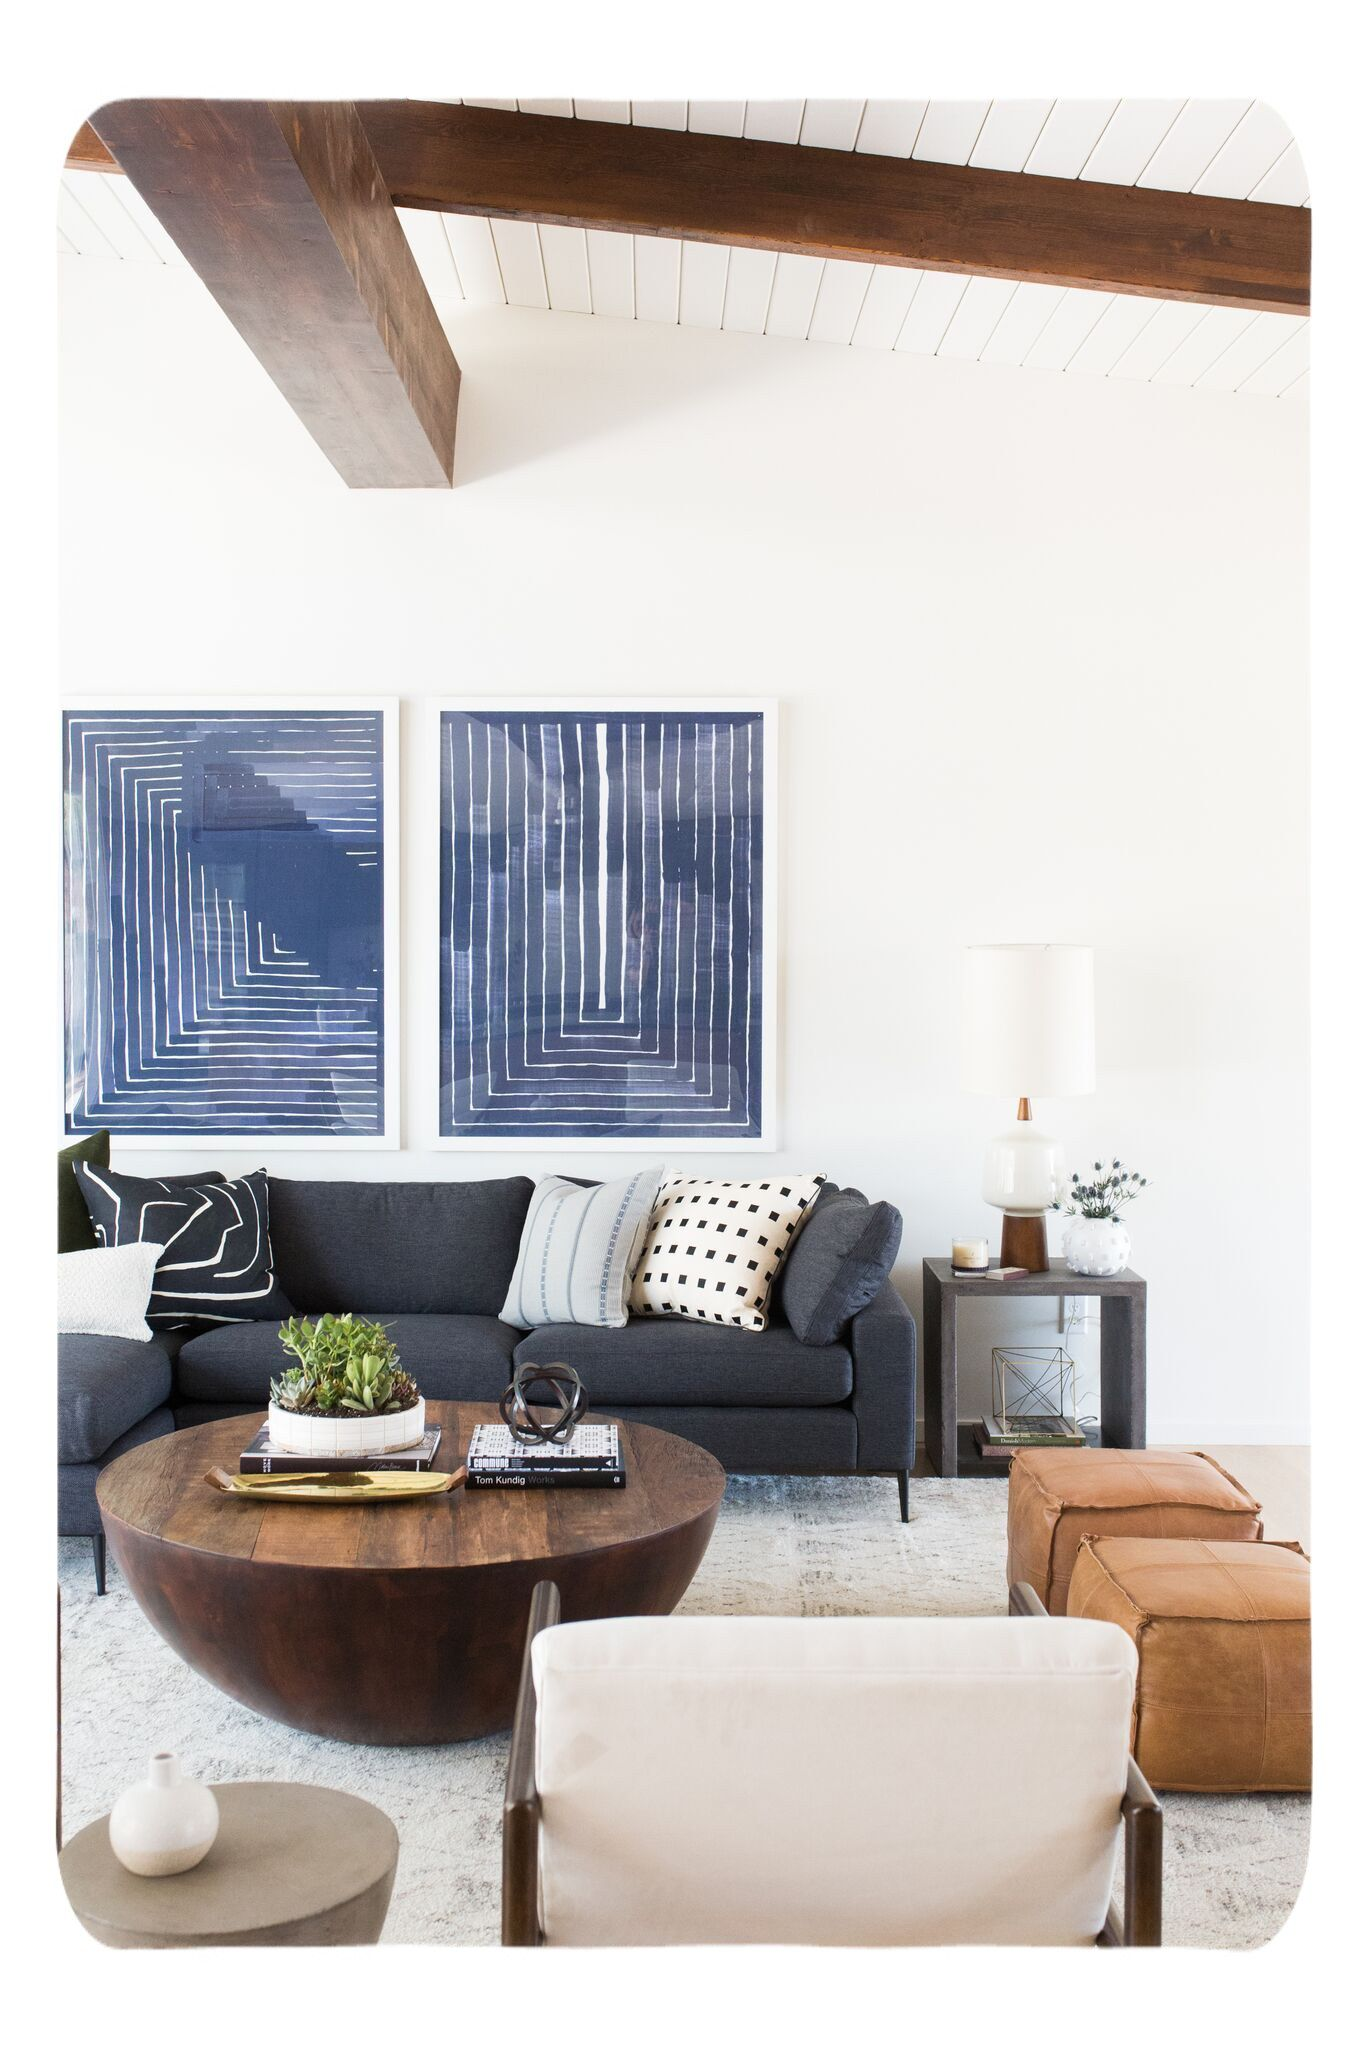 Living Room Decor Getting Excited By Designs And Styles, Trends